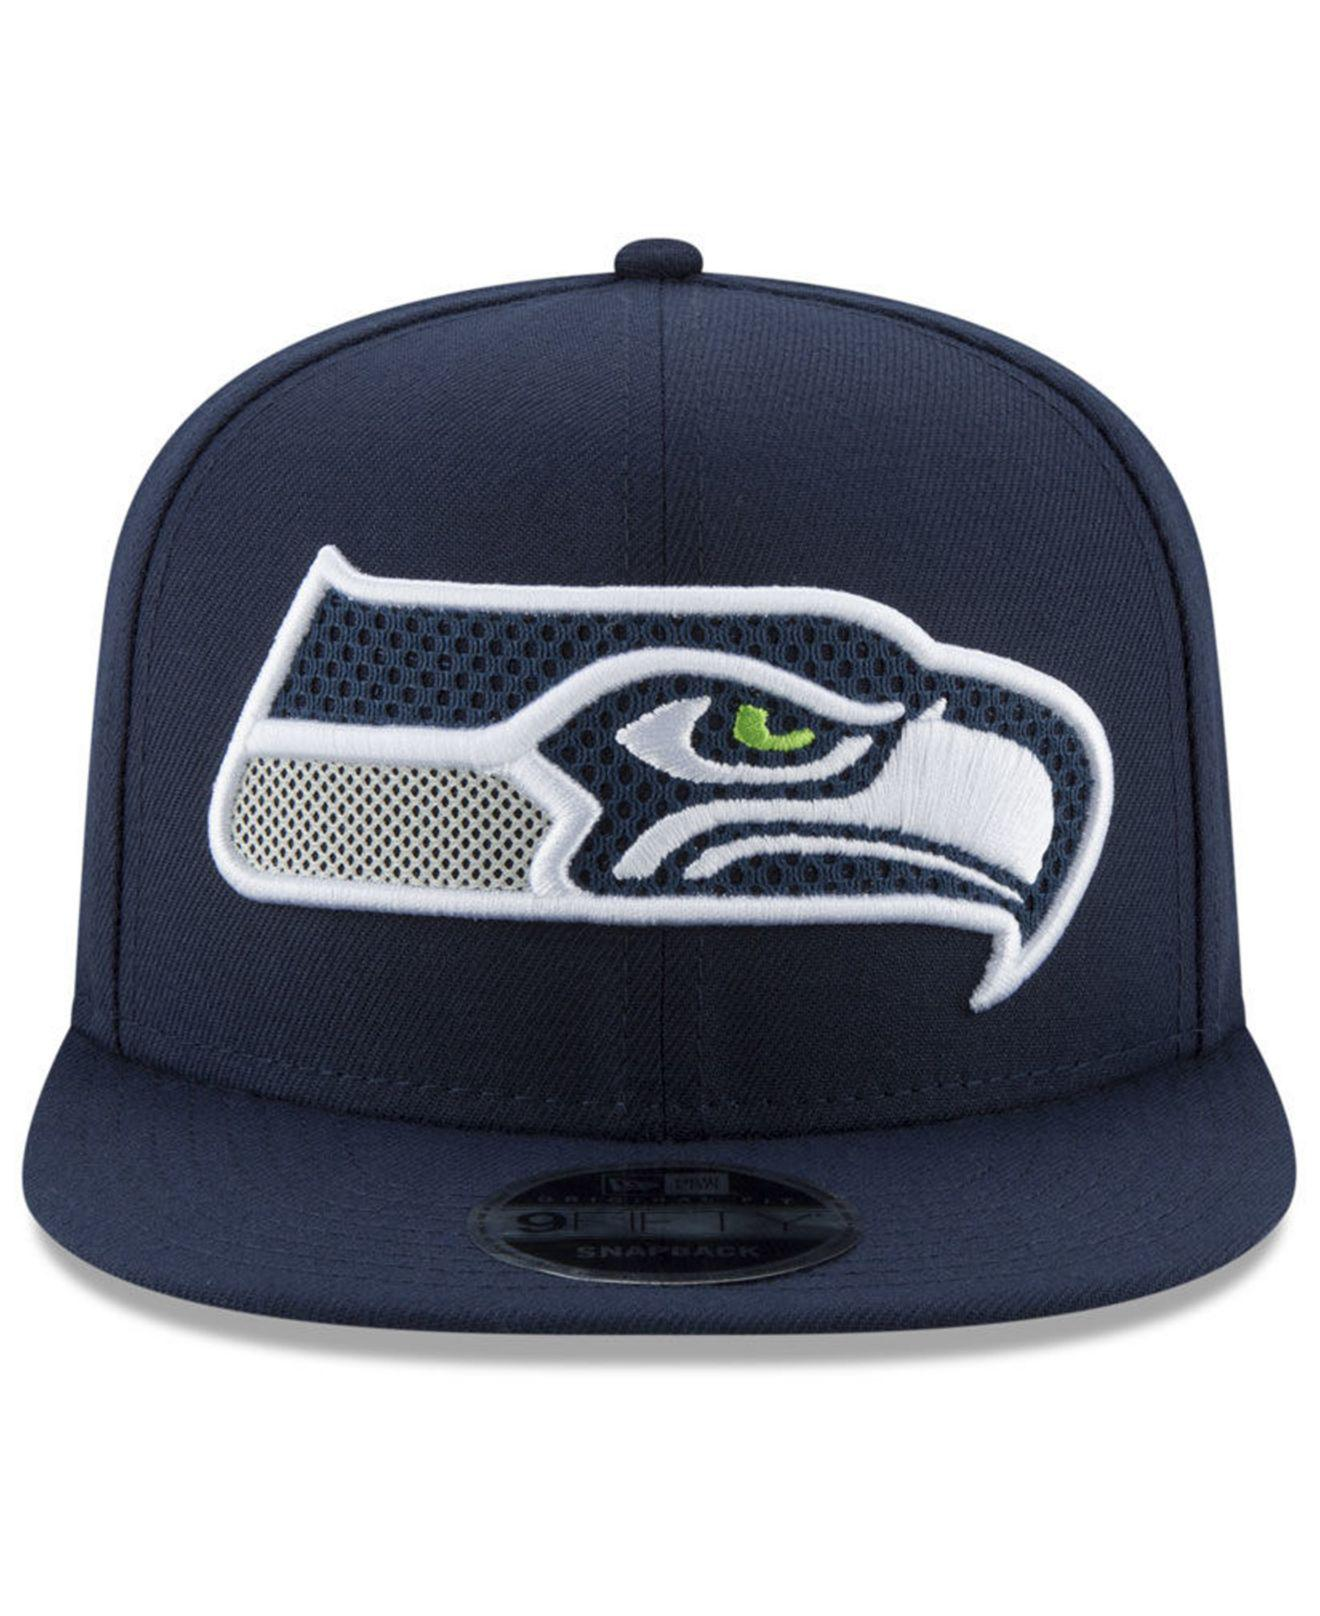 2cb7a2dcbf9 Lyst - Ktz Seattle Seahawks Meshed Mix 9fifty Snapback Cap in Blue for Men